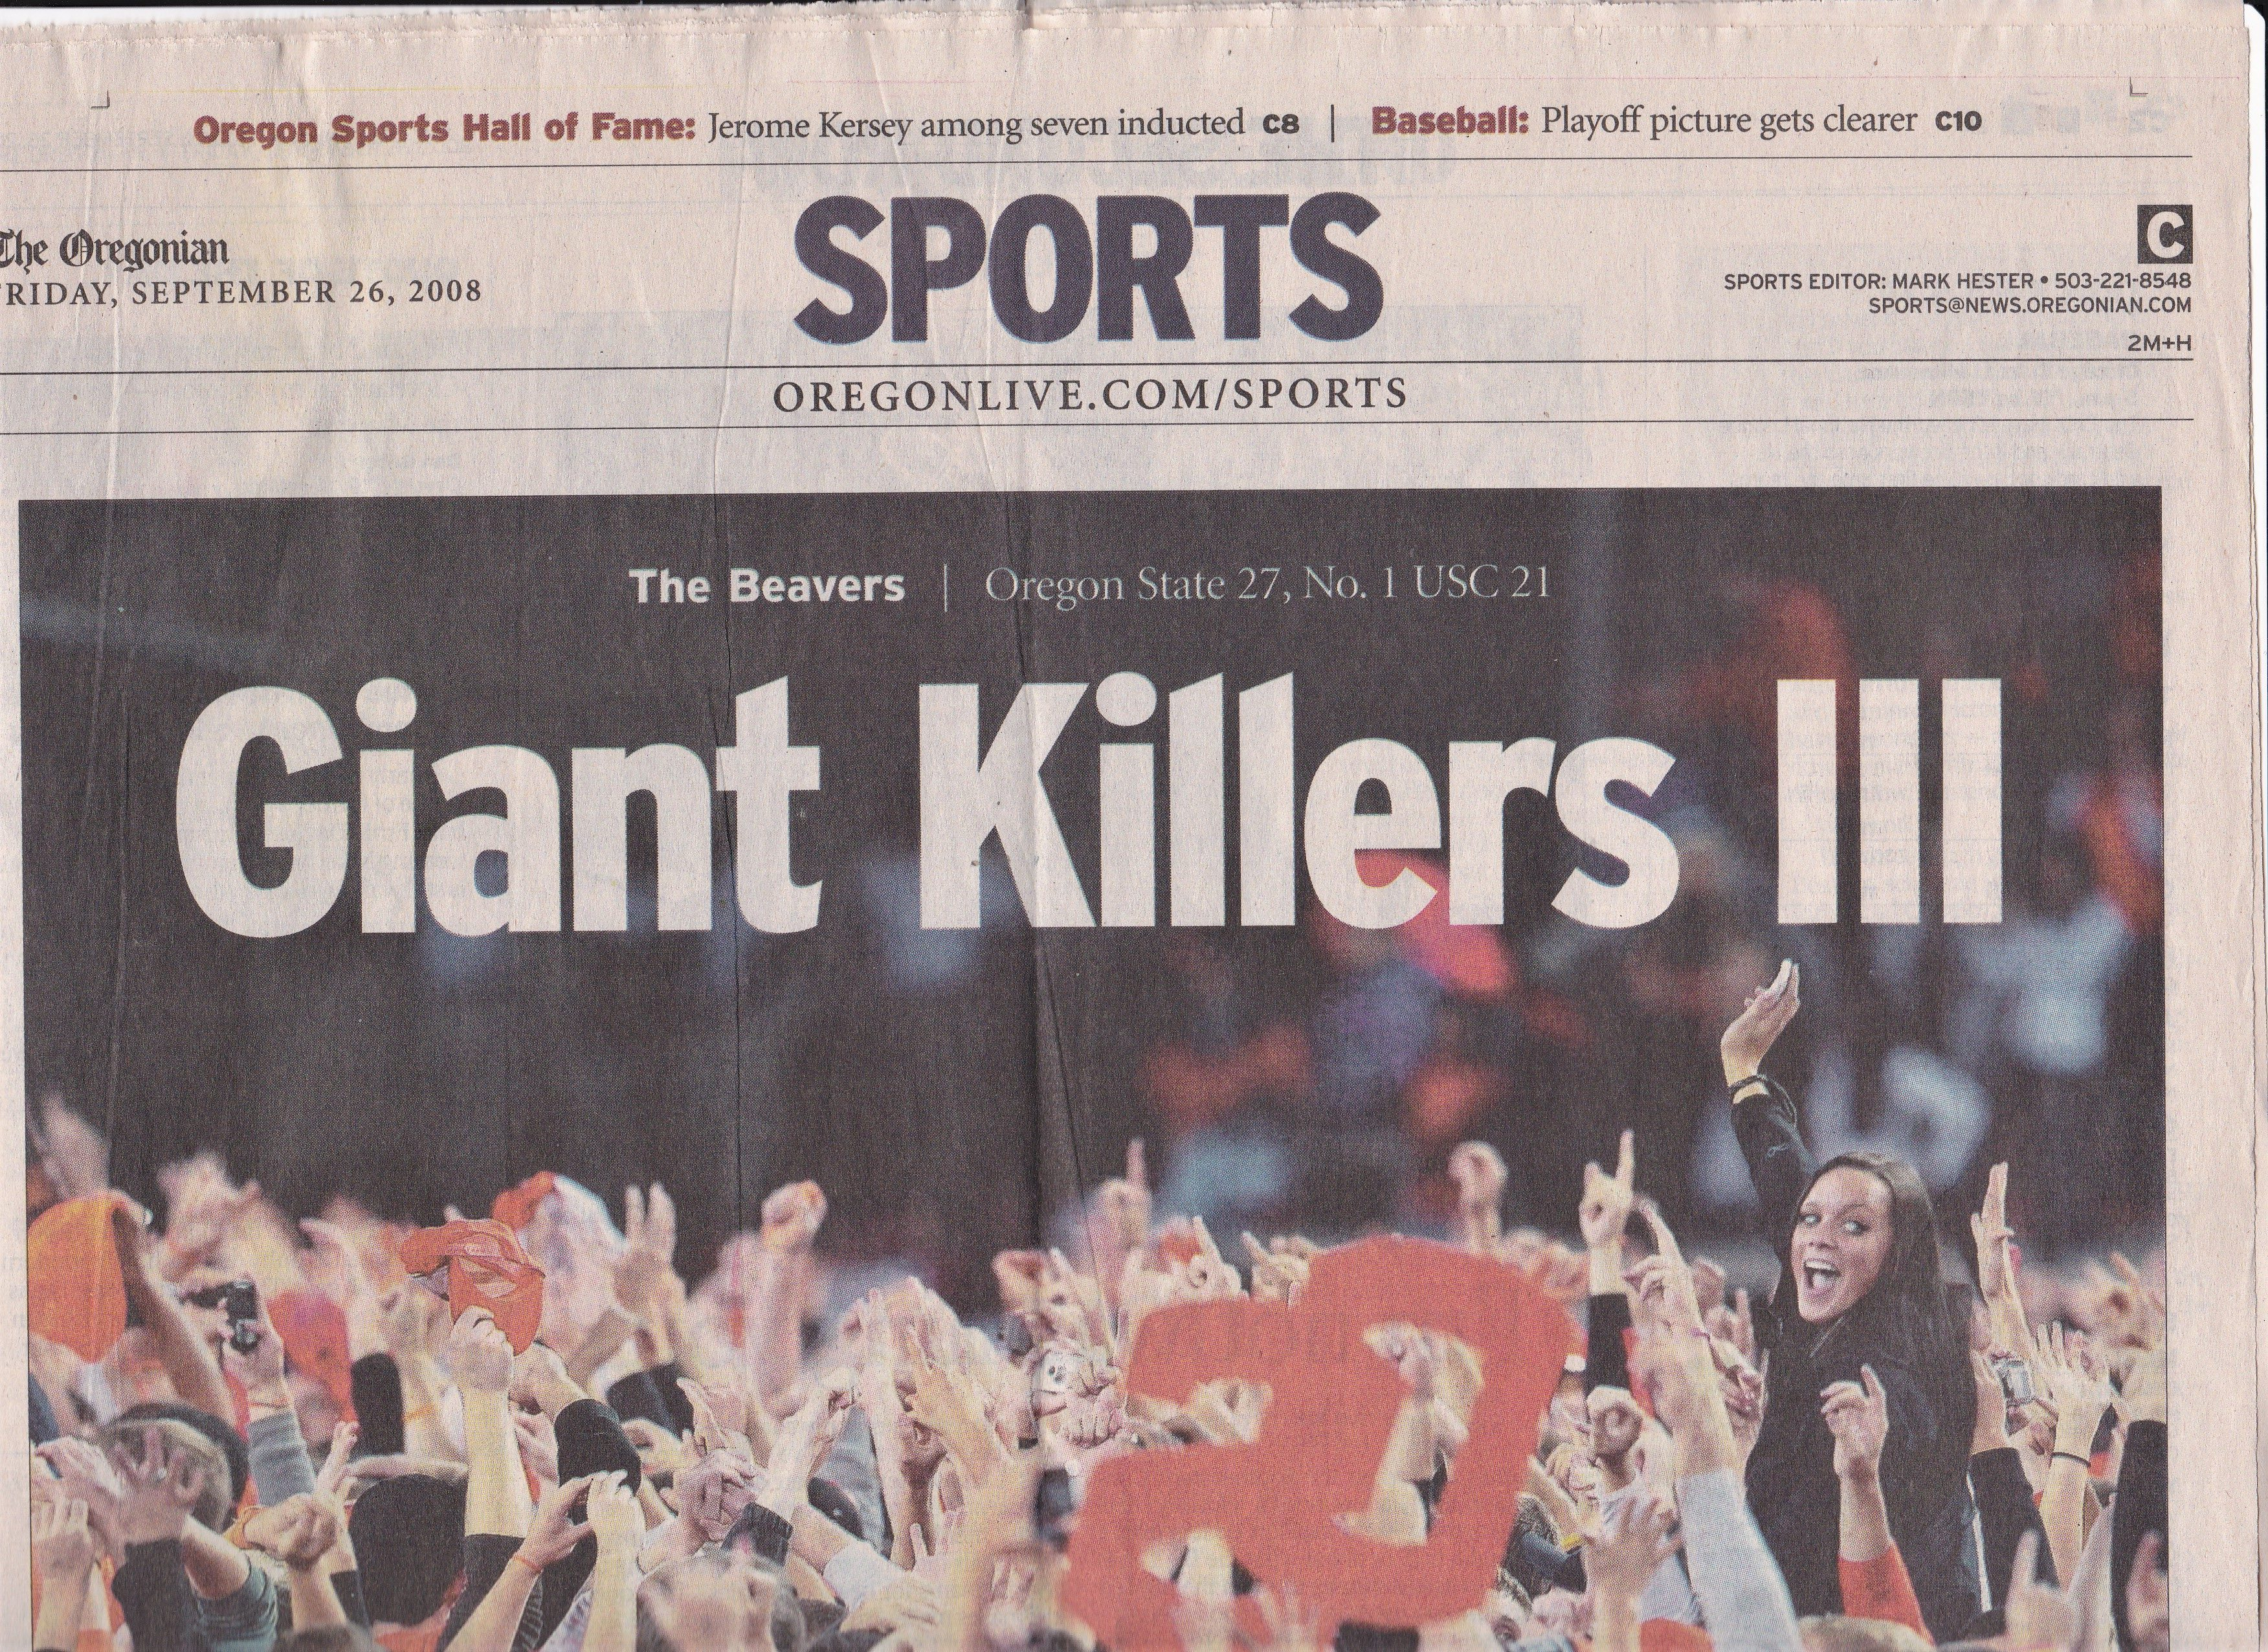 1 rated USC 27 to 21 at Reser Stadium The ac panying article also asserted that Giant Killers II was the October 25 2006 game in Corvallis when OSU beat